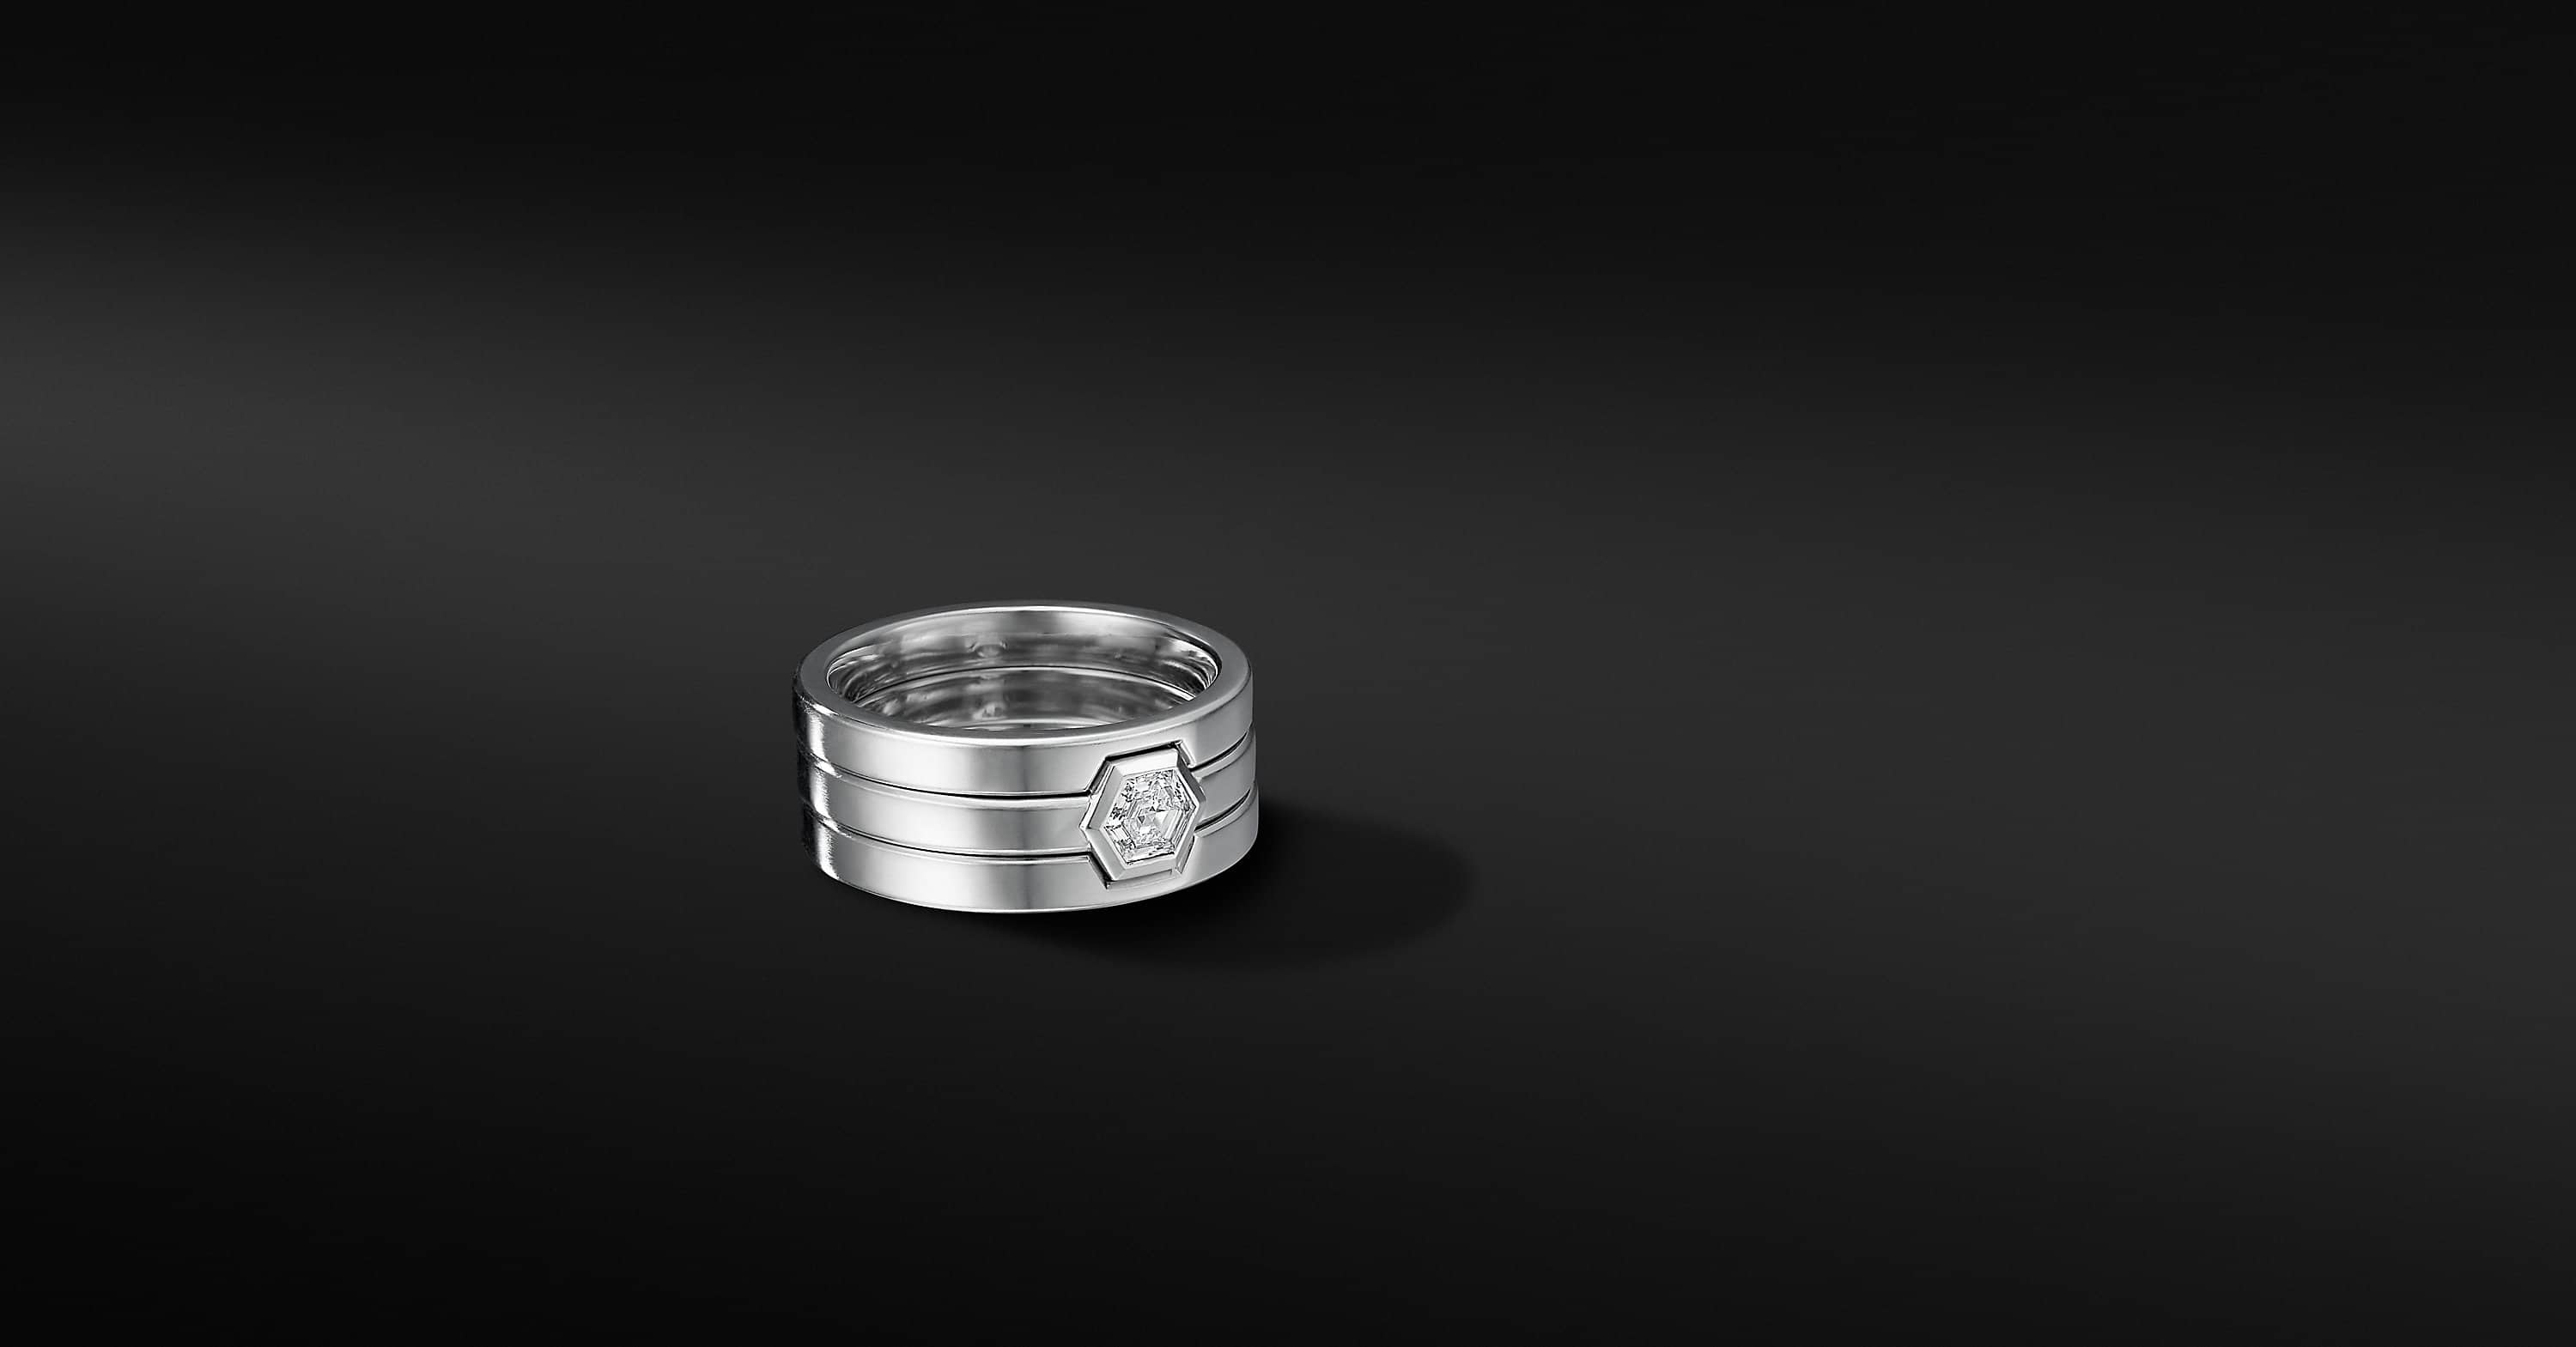 Nesting Band Ring in Platinum, 10mm